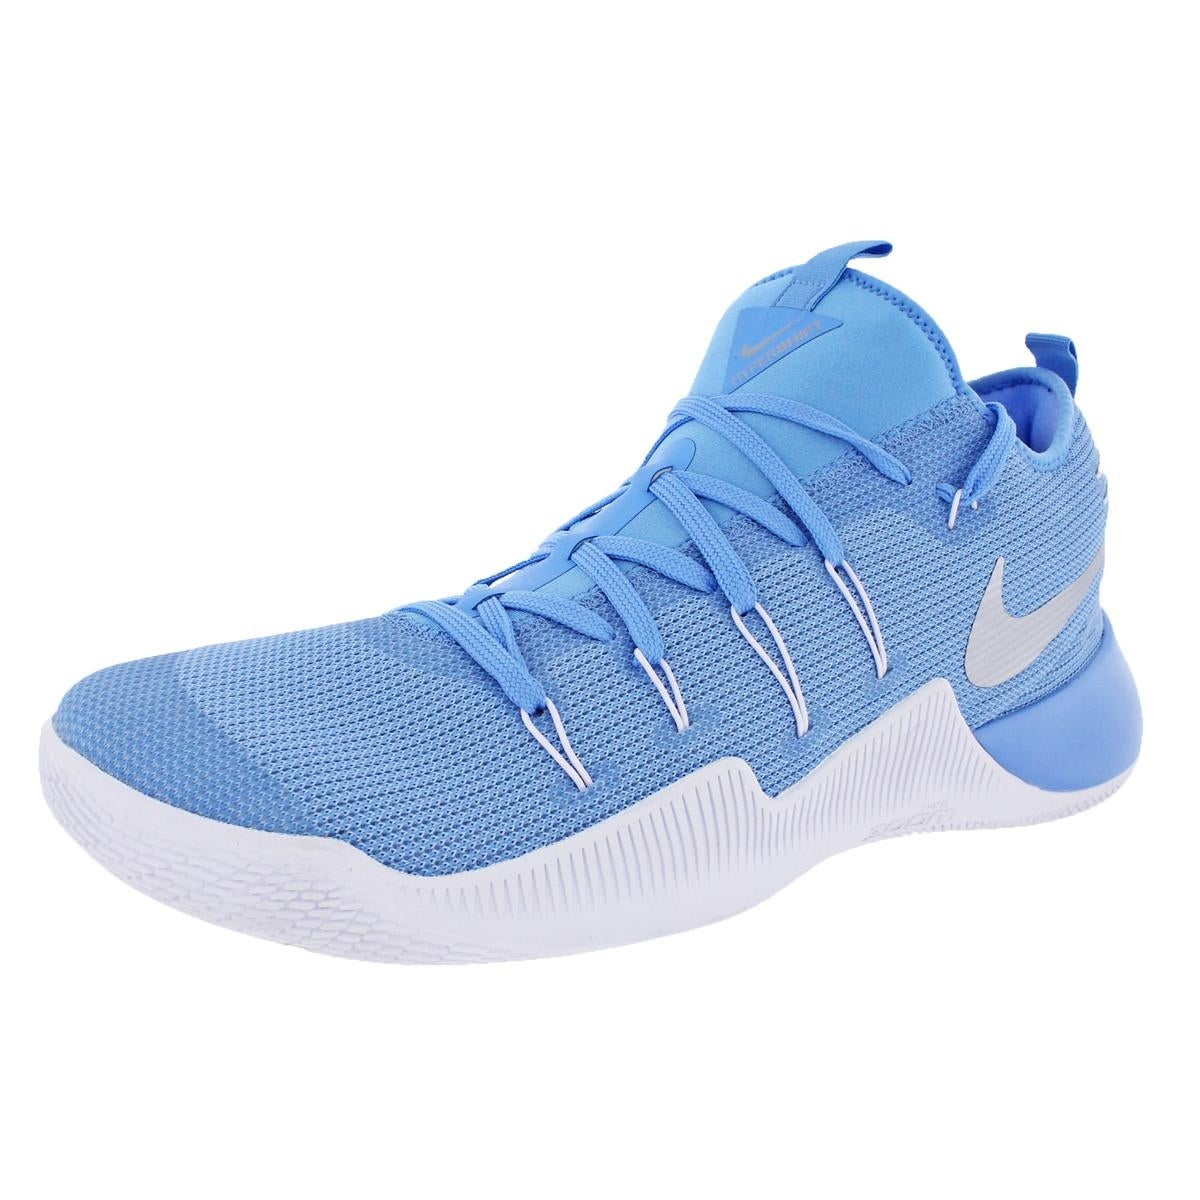 fef0f8f6d431 30b41 f72b6  discount code for shop nike mens hypershift tb promo basketball  shoes mid top nike zoom free